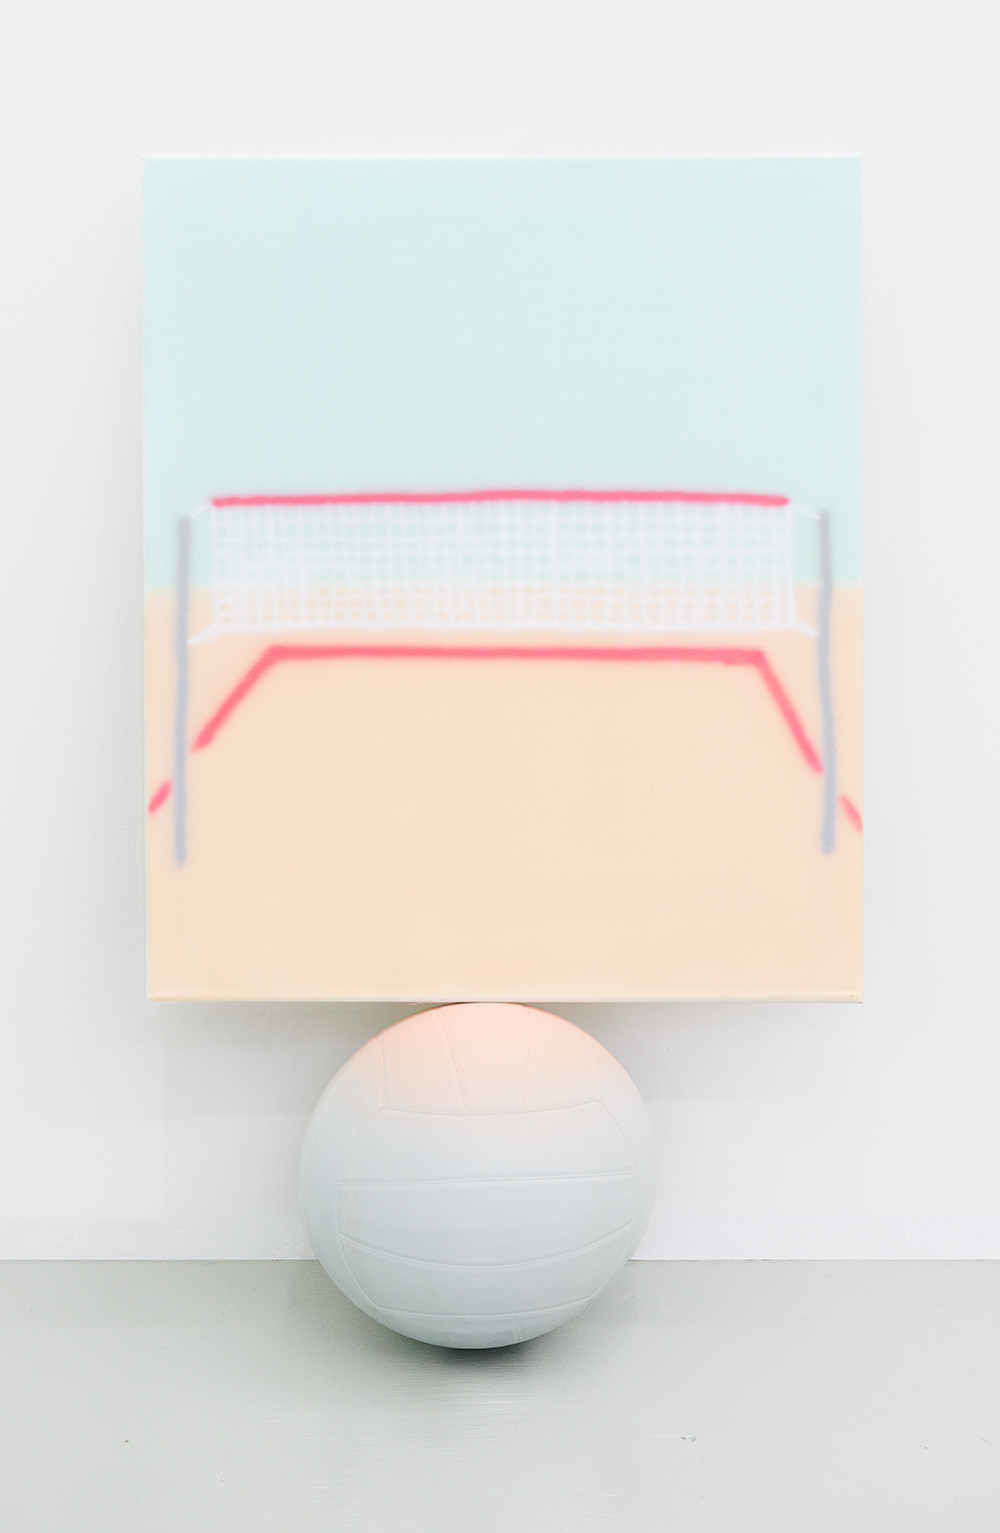 Jonny Paul Gillette Goal on volleyball ball, 2015 Acrylic polymer on canvas, volleyball  2015